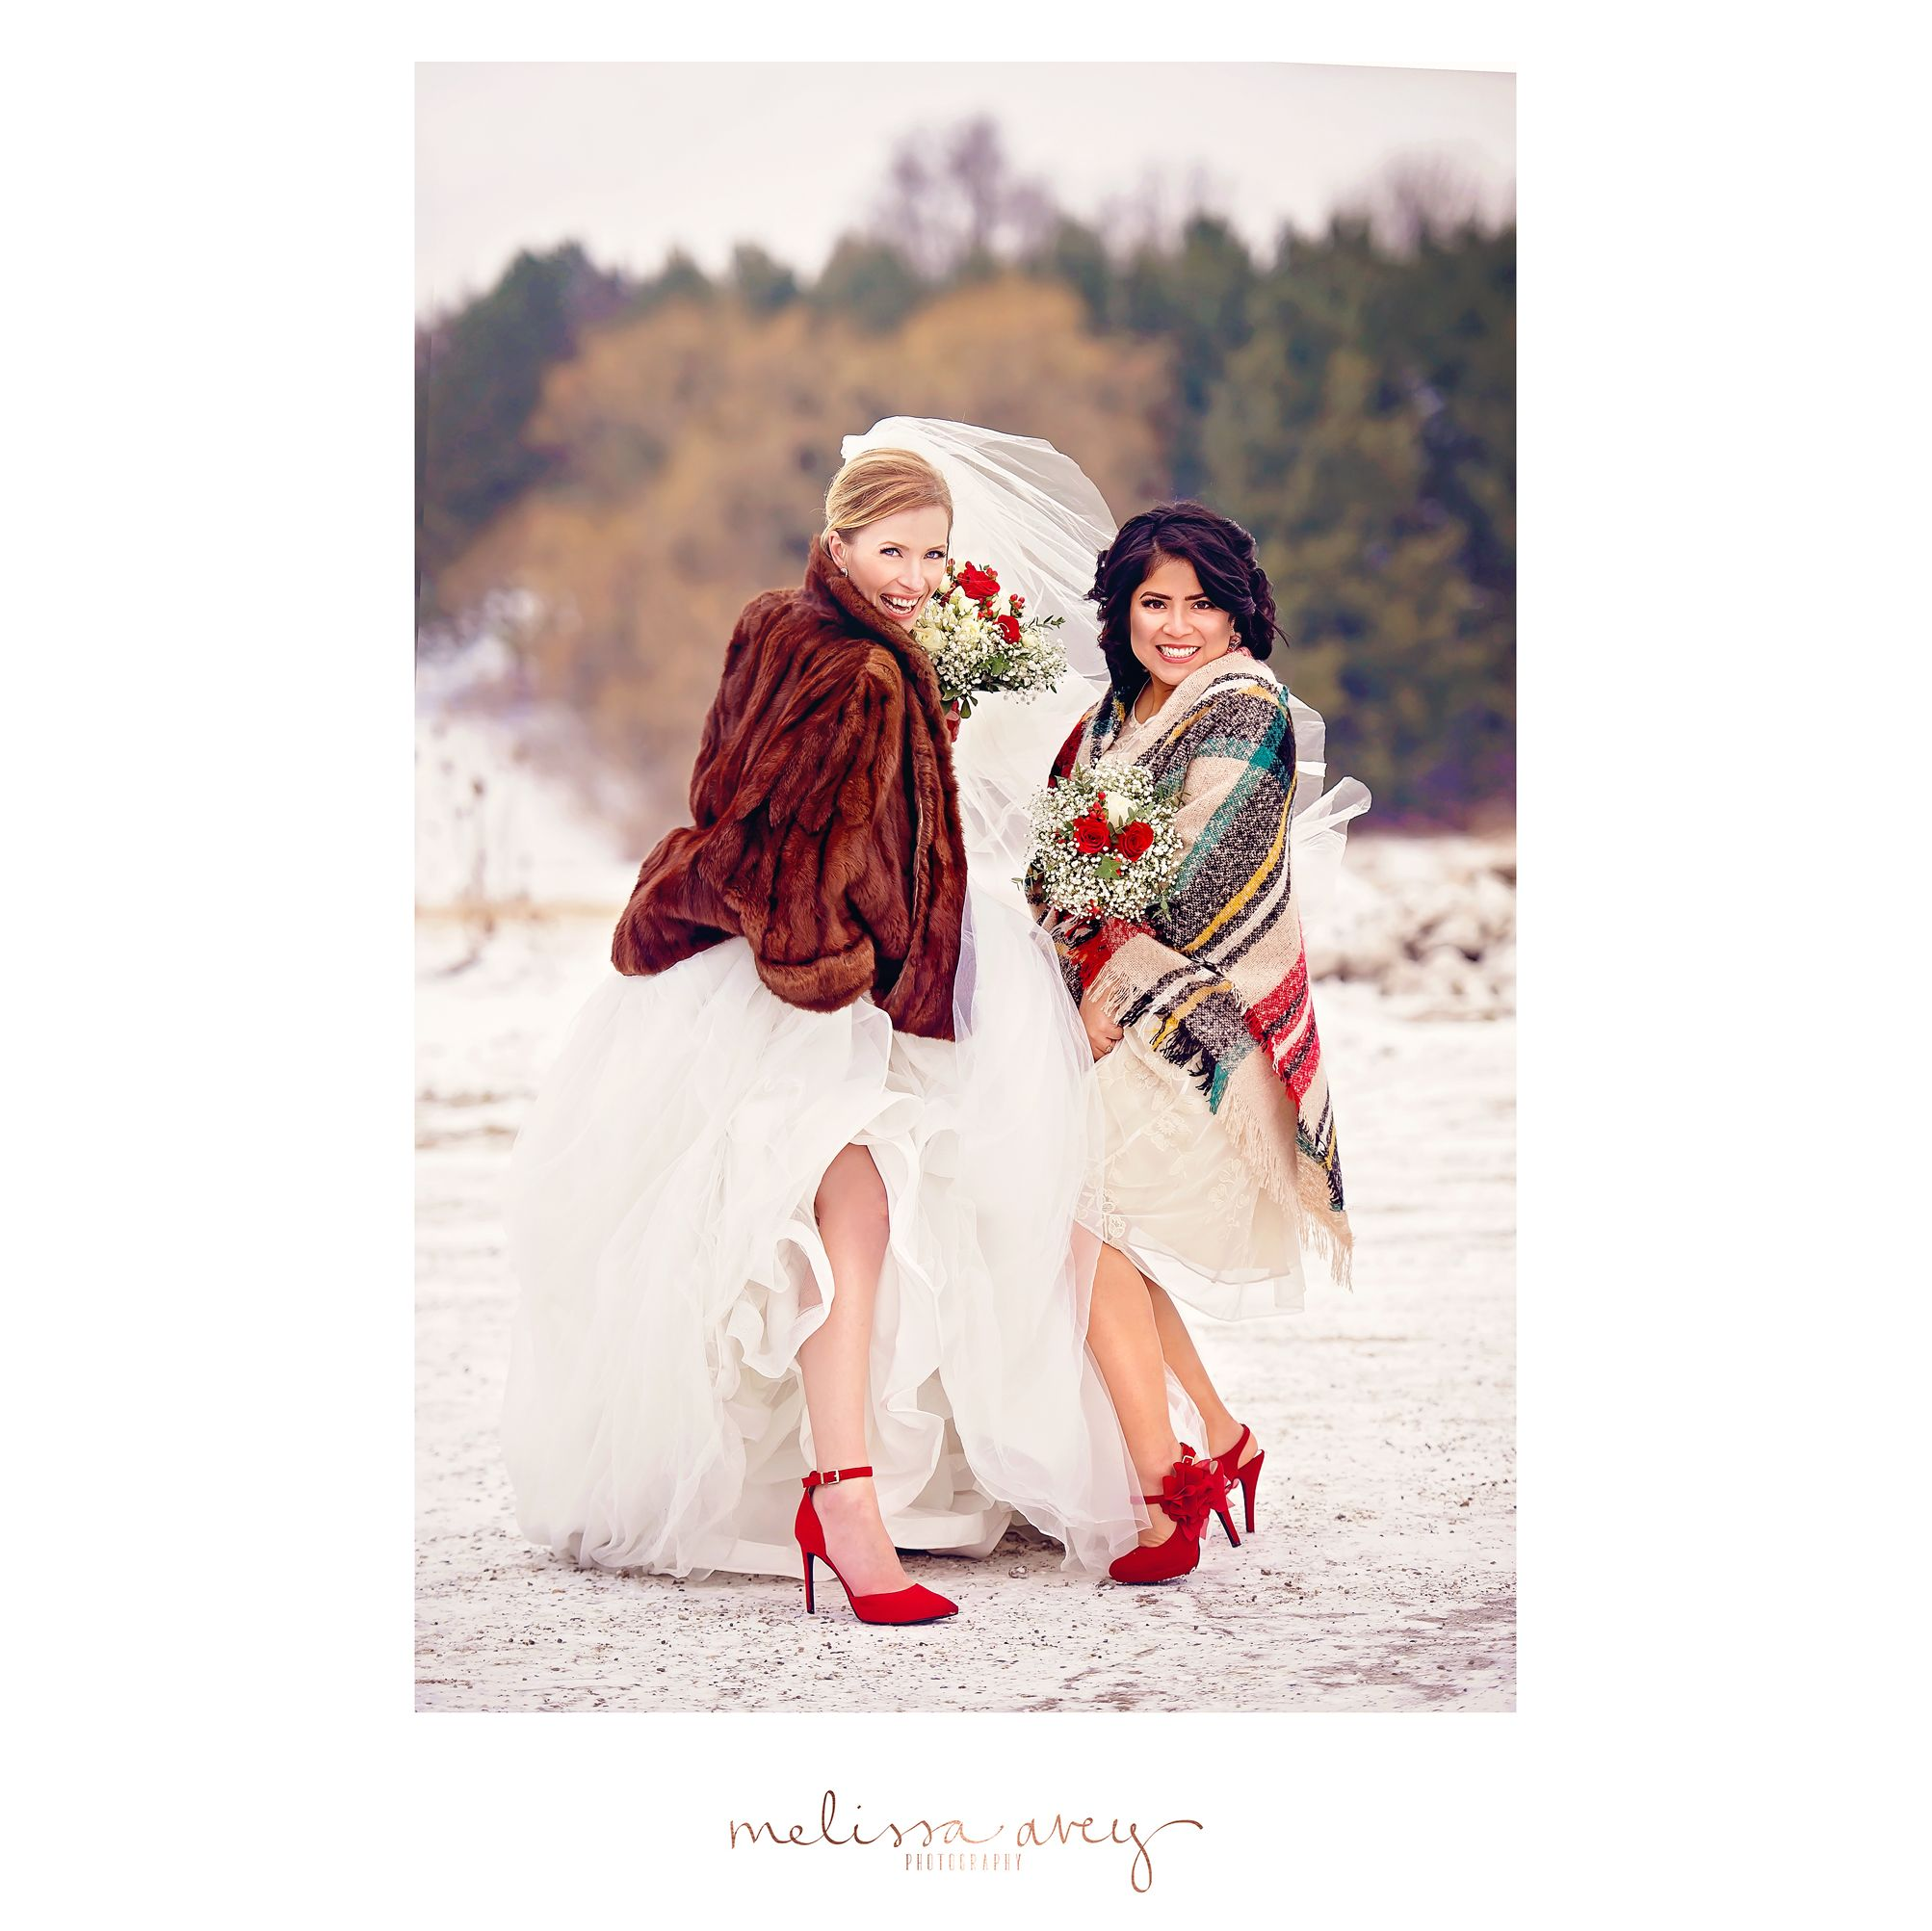 Red dress shoes for wedding  Bride u Bridesmaid red shoes winter wedding Melissa Avey